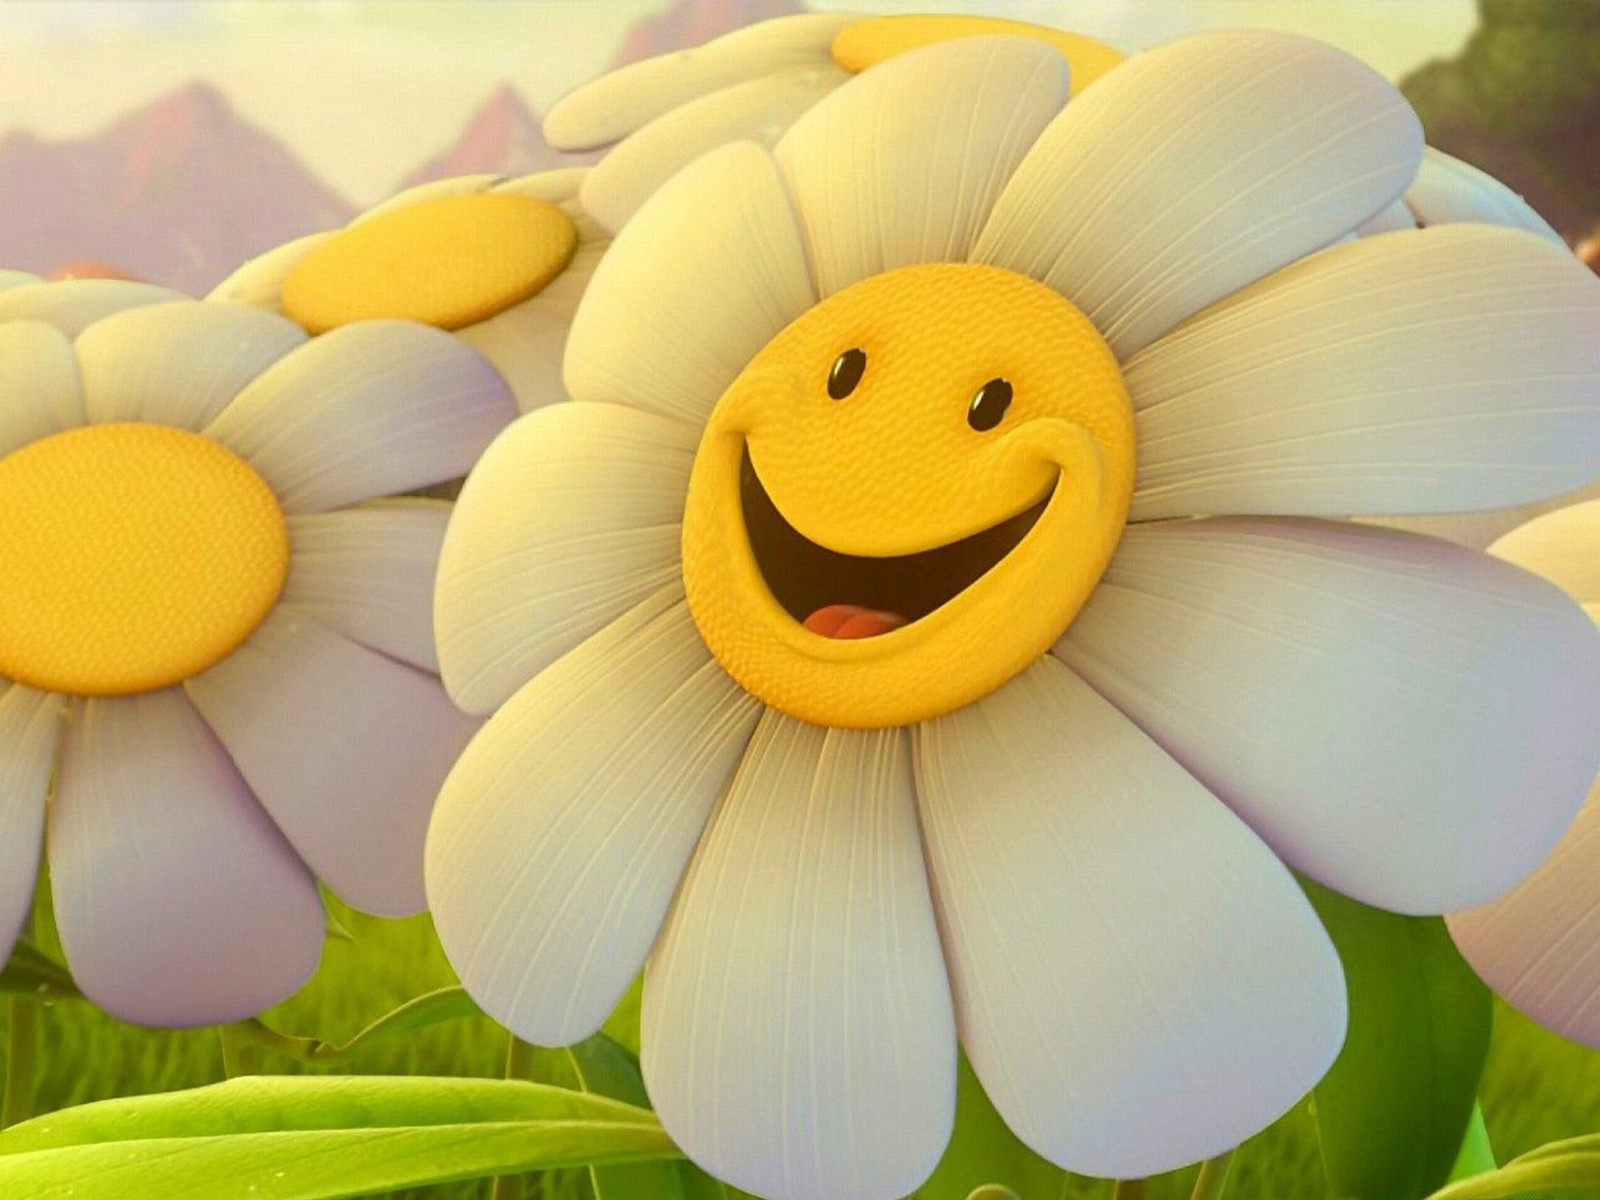 Smiley Faces Wallpapers  Wallpaper  1600x1200